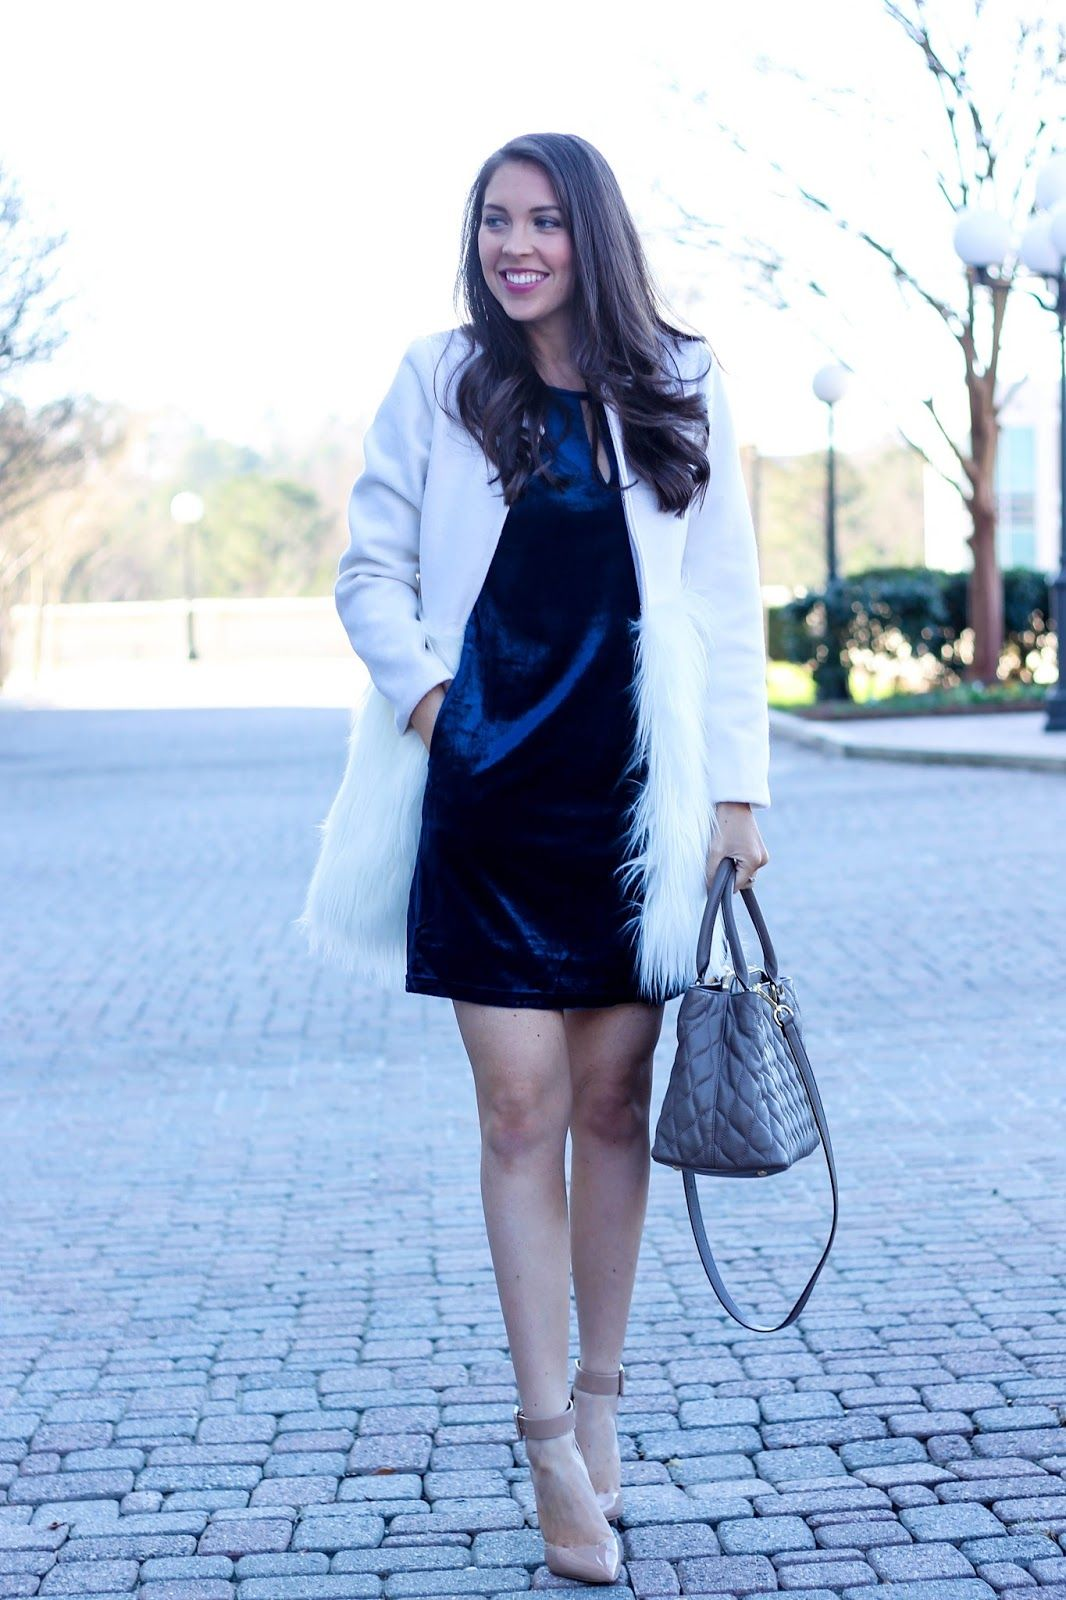 Navy Blue Velvet Shift Dress With Faux Fur Coat In White Winter Cottonink Miranka M Outfit Pretty The Pines Shelbslv